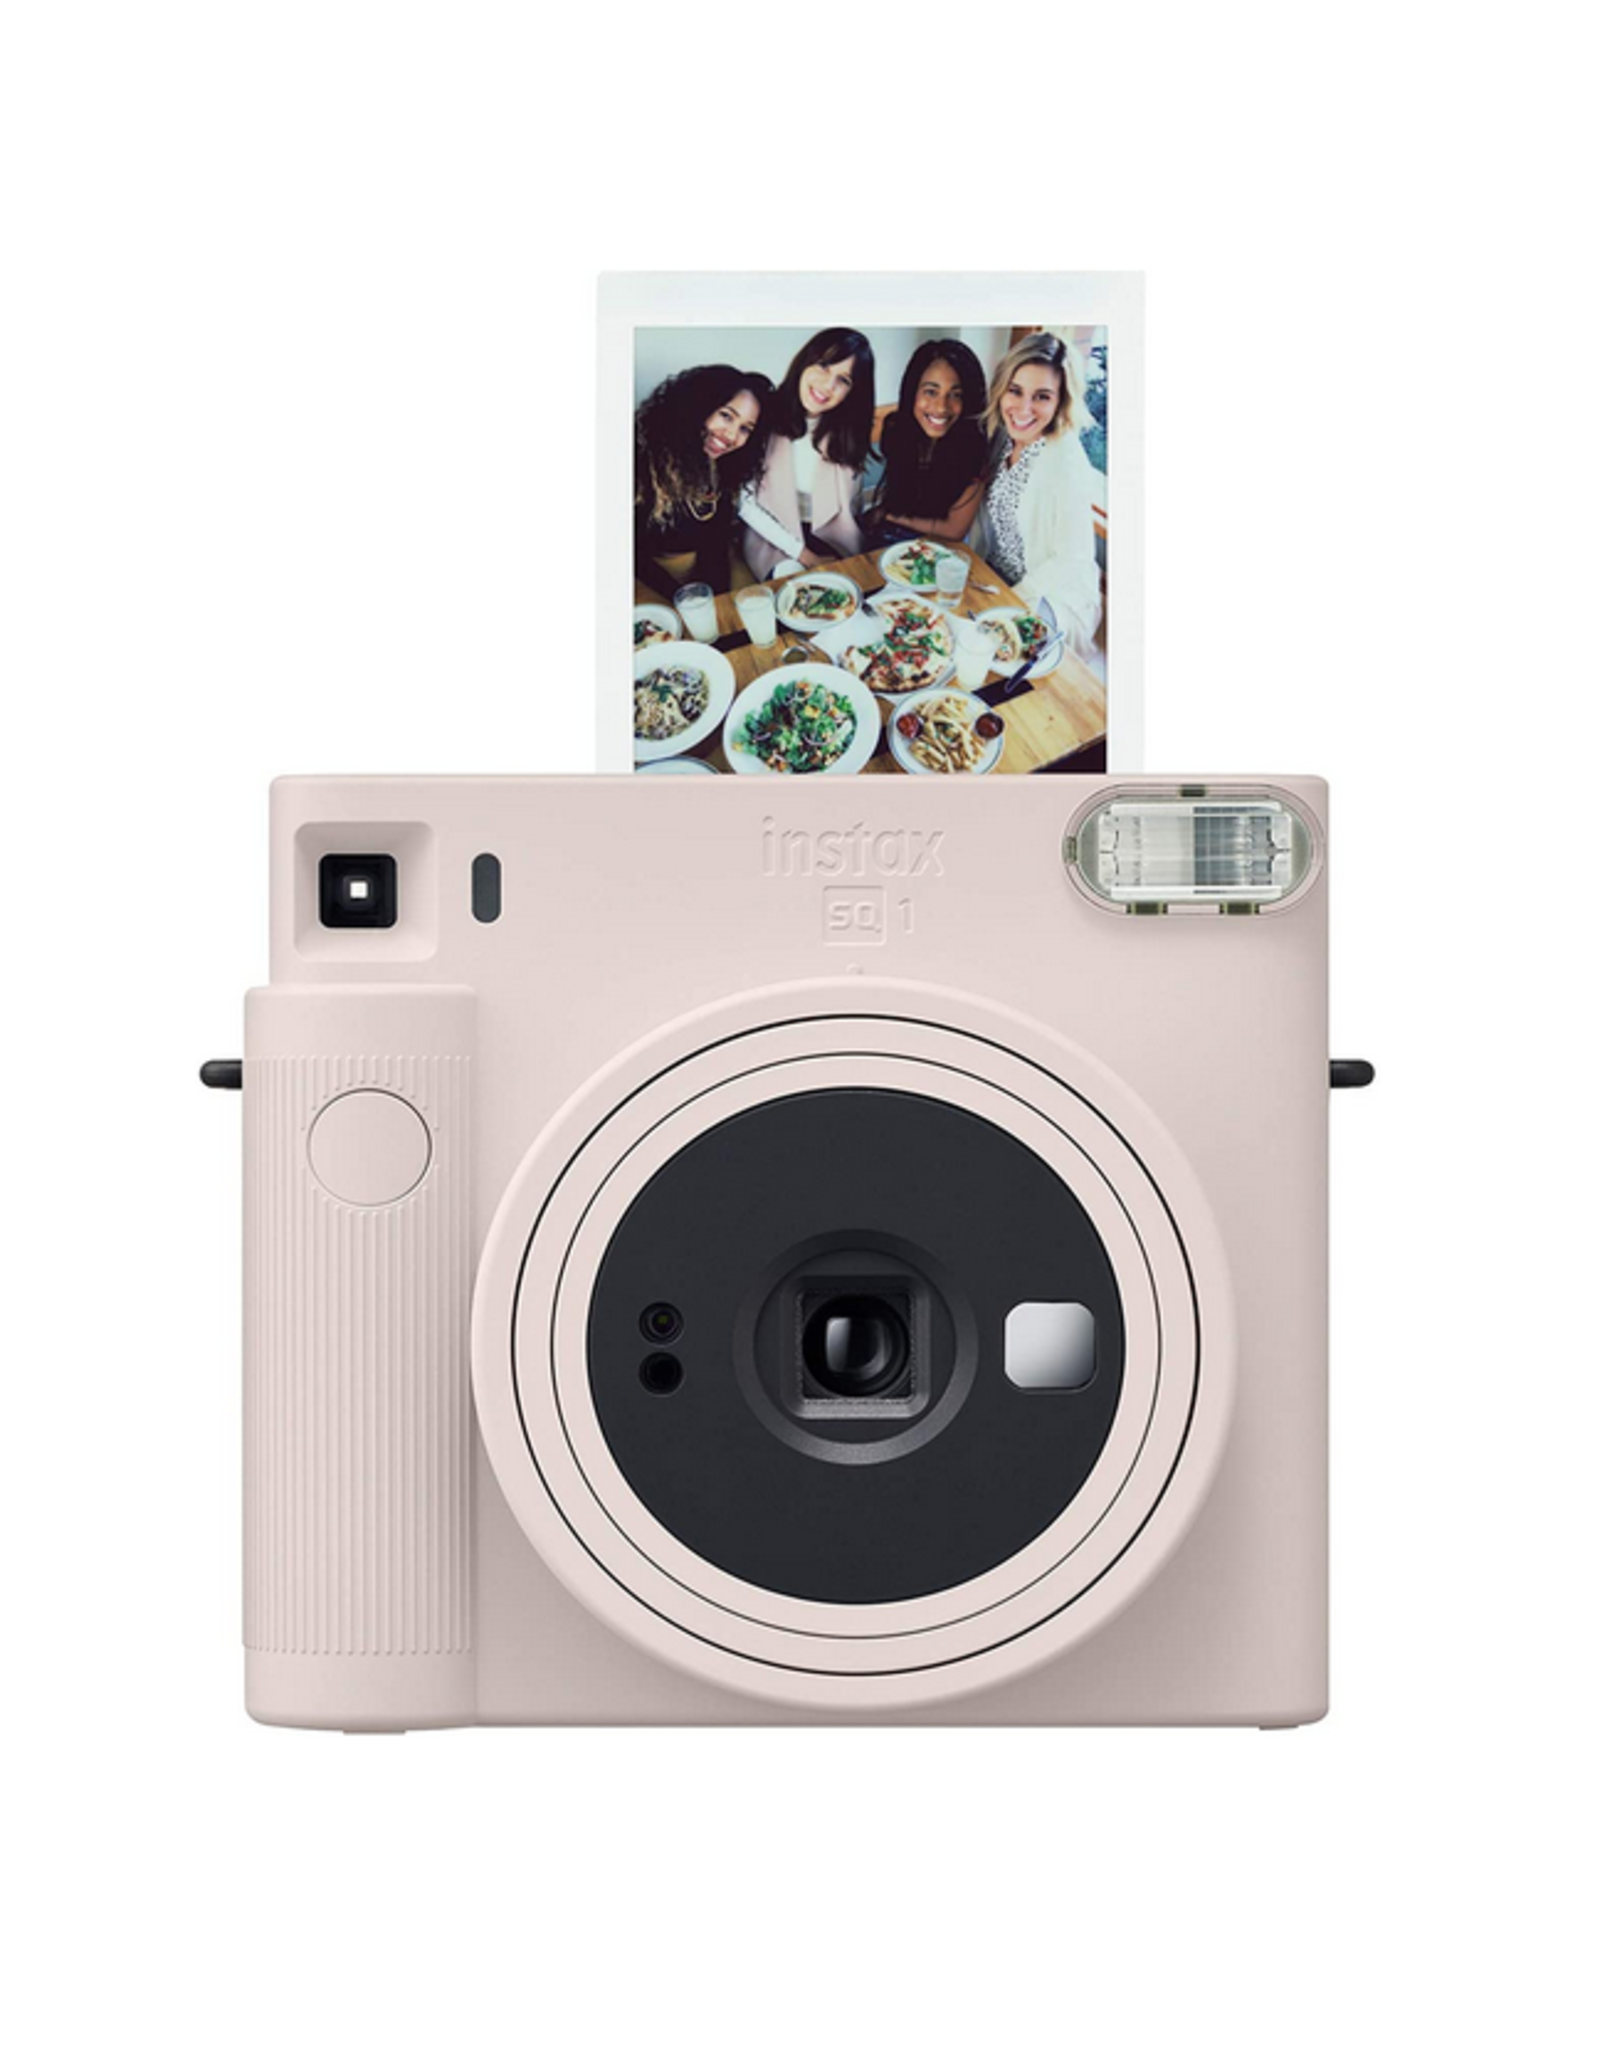 Fujifilm Camera - Fujifilm Instax SQUARE SQ1, Chalk White